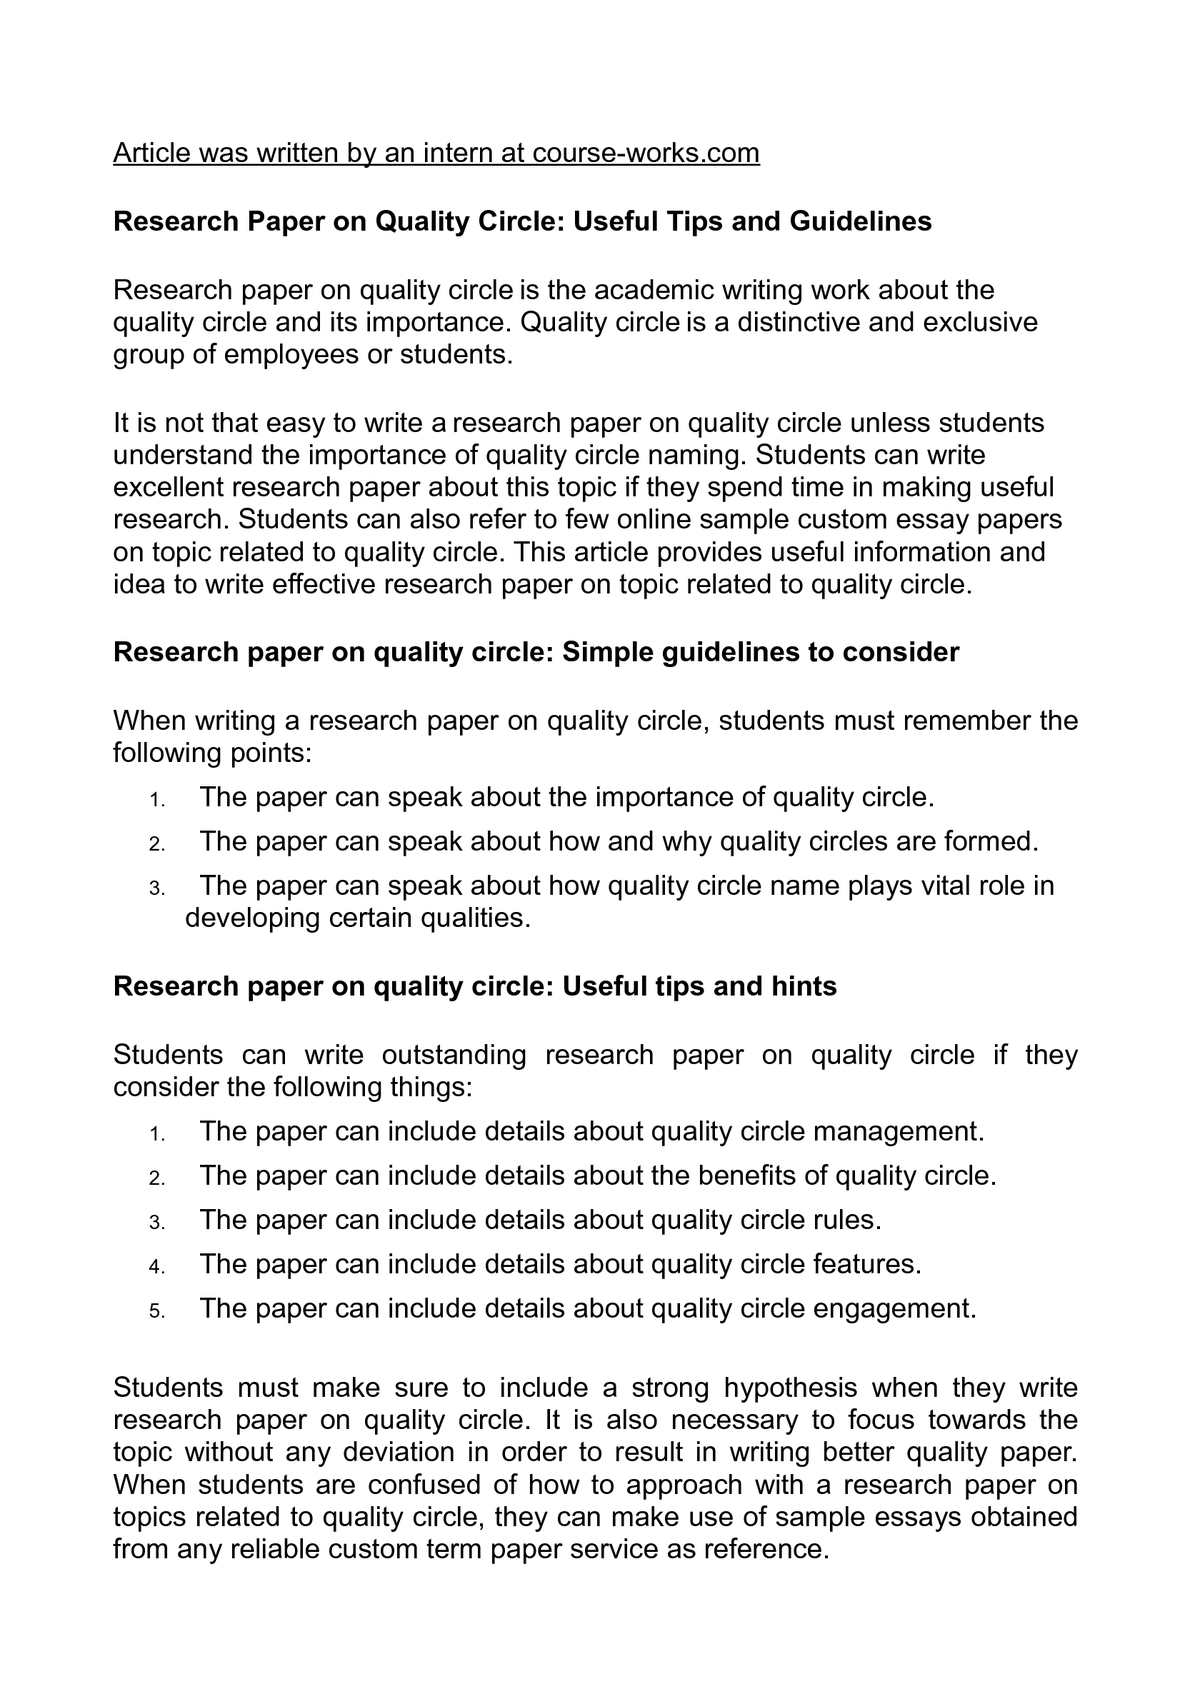 007 Research Paper Easy Topics Beautiful For High School Students American History About Business Full